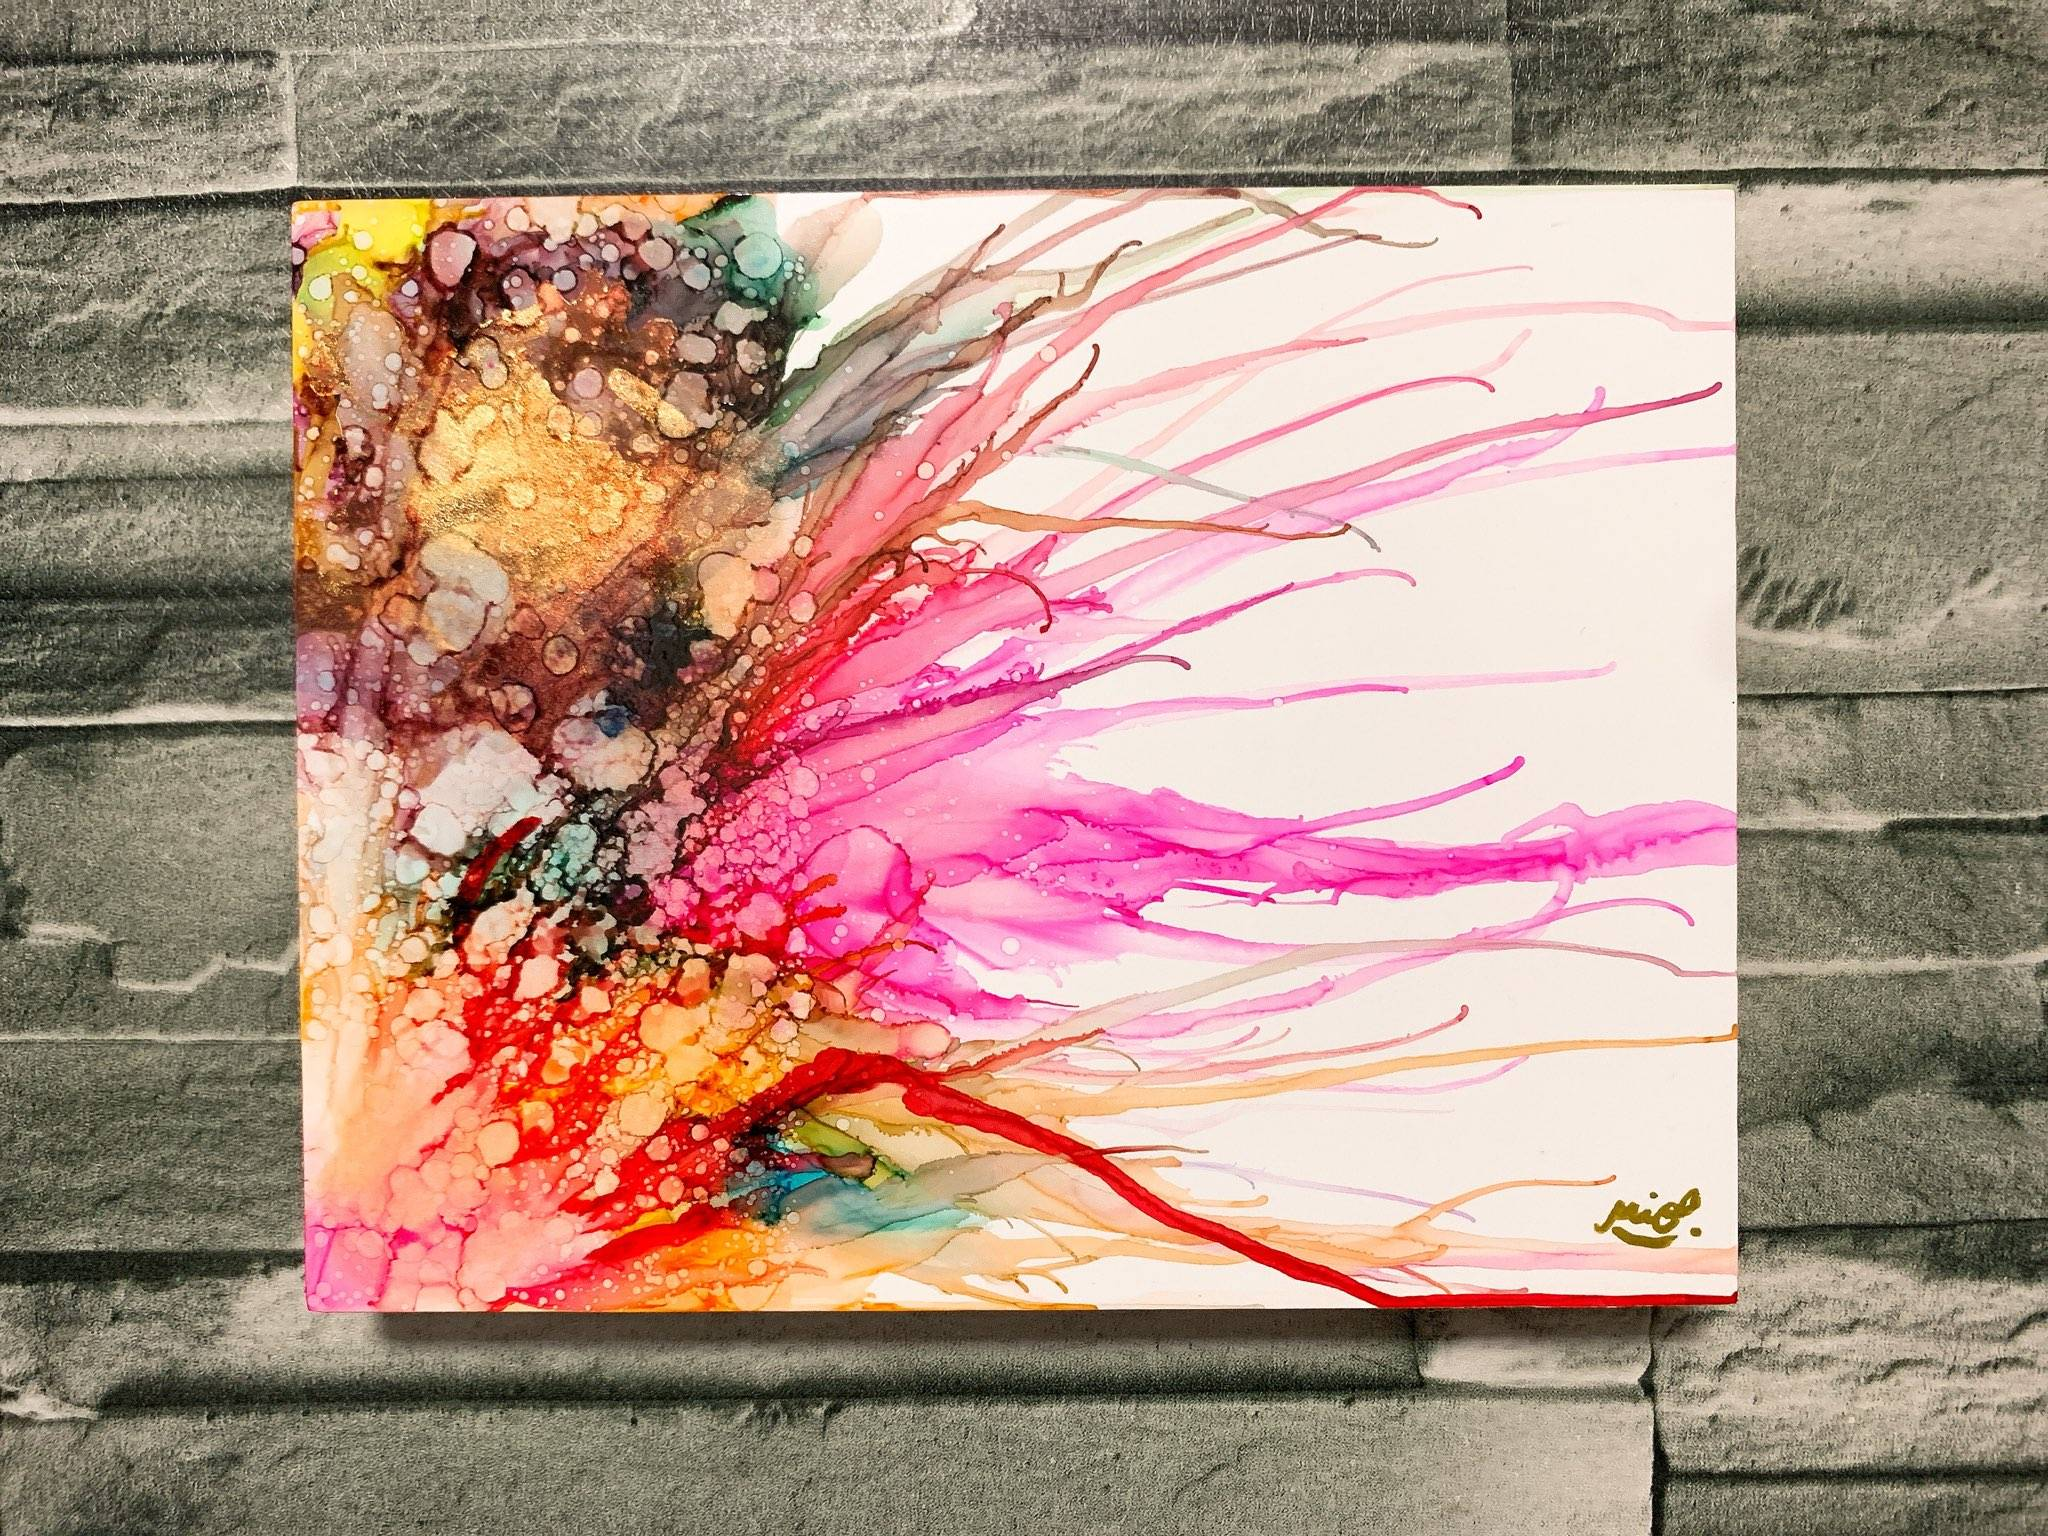 Free Try Image of your art work hanging on the wall